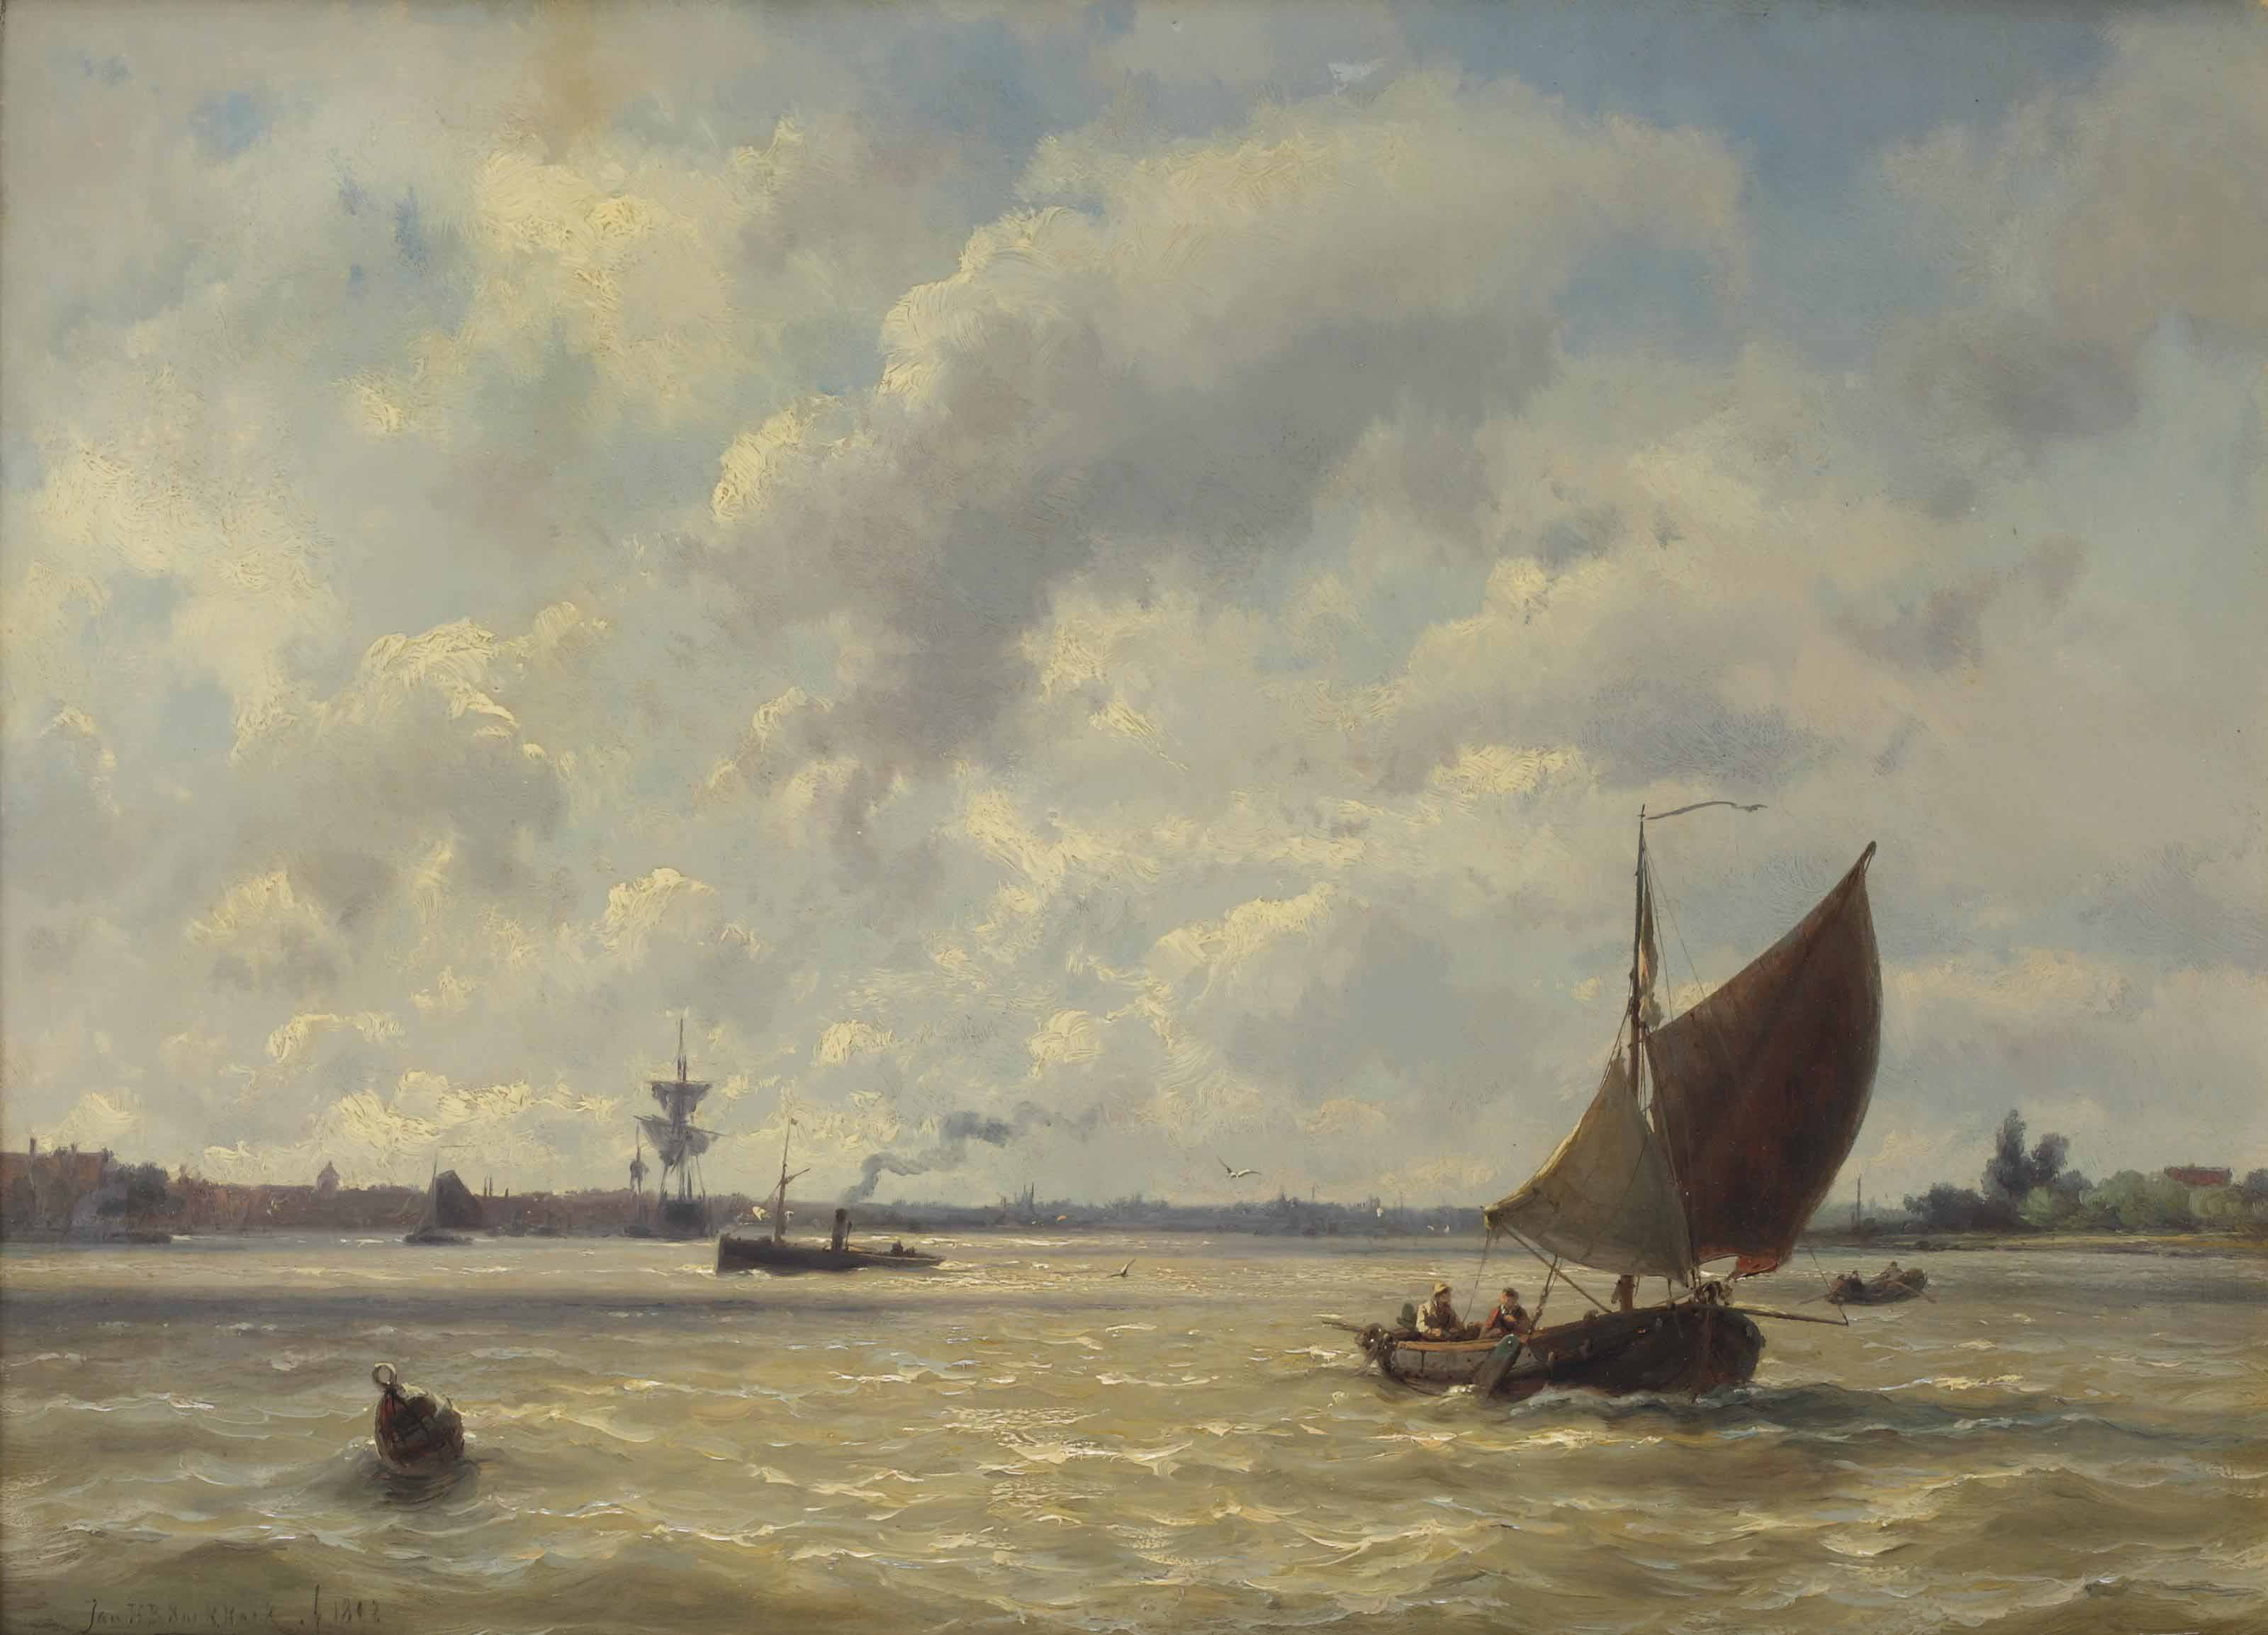 A capriccio view with ships on the Nieuwe Maas, Rotterdam